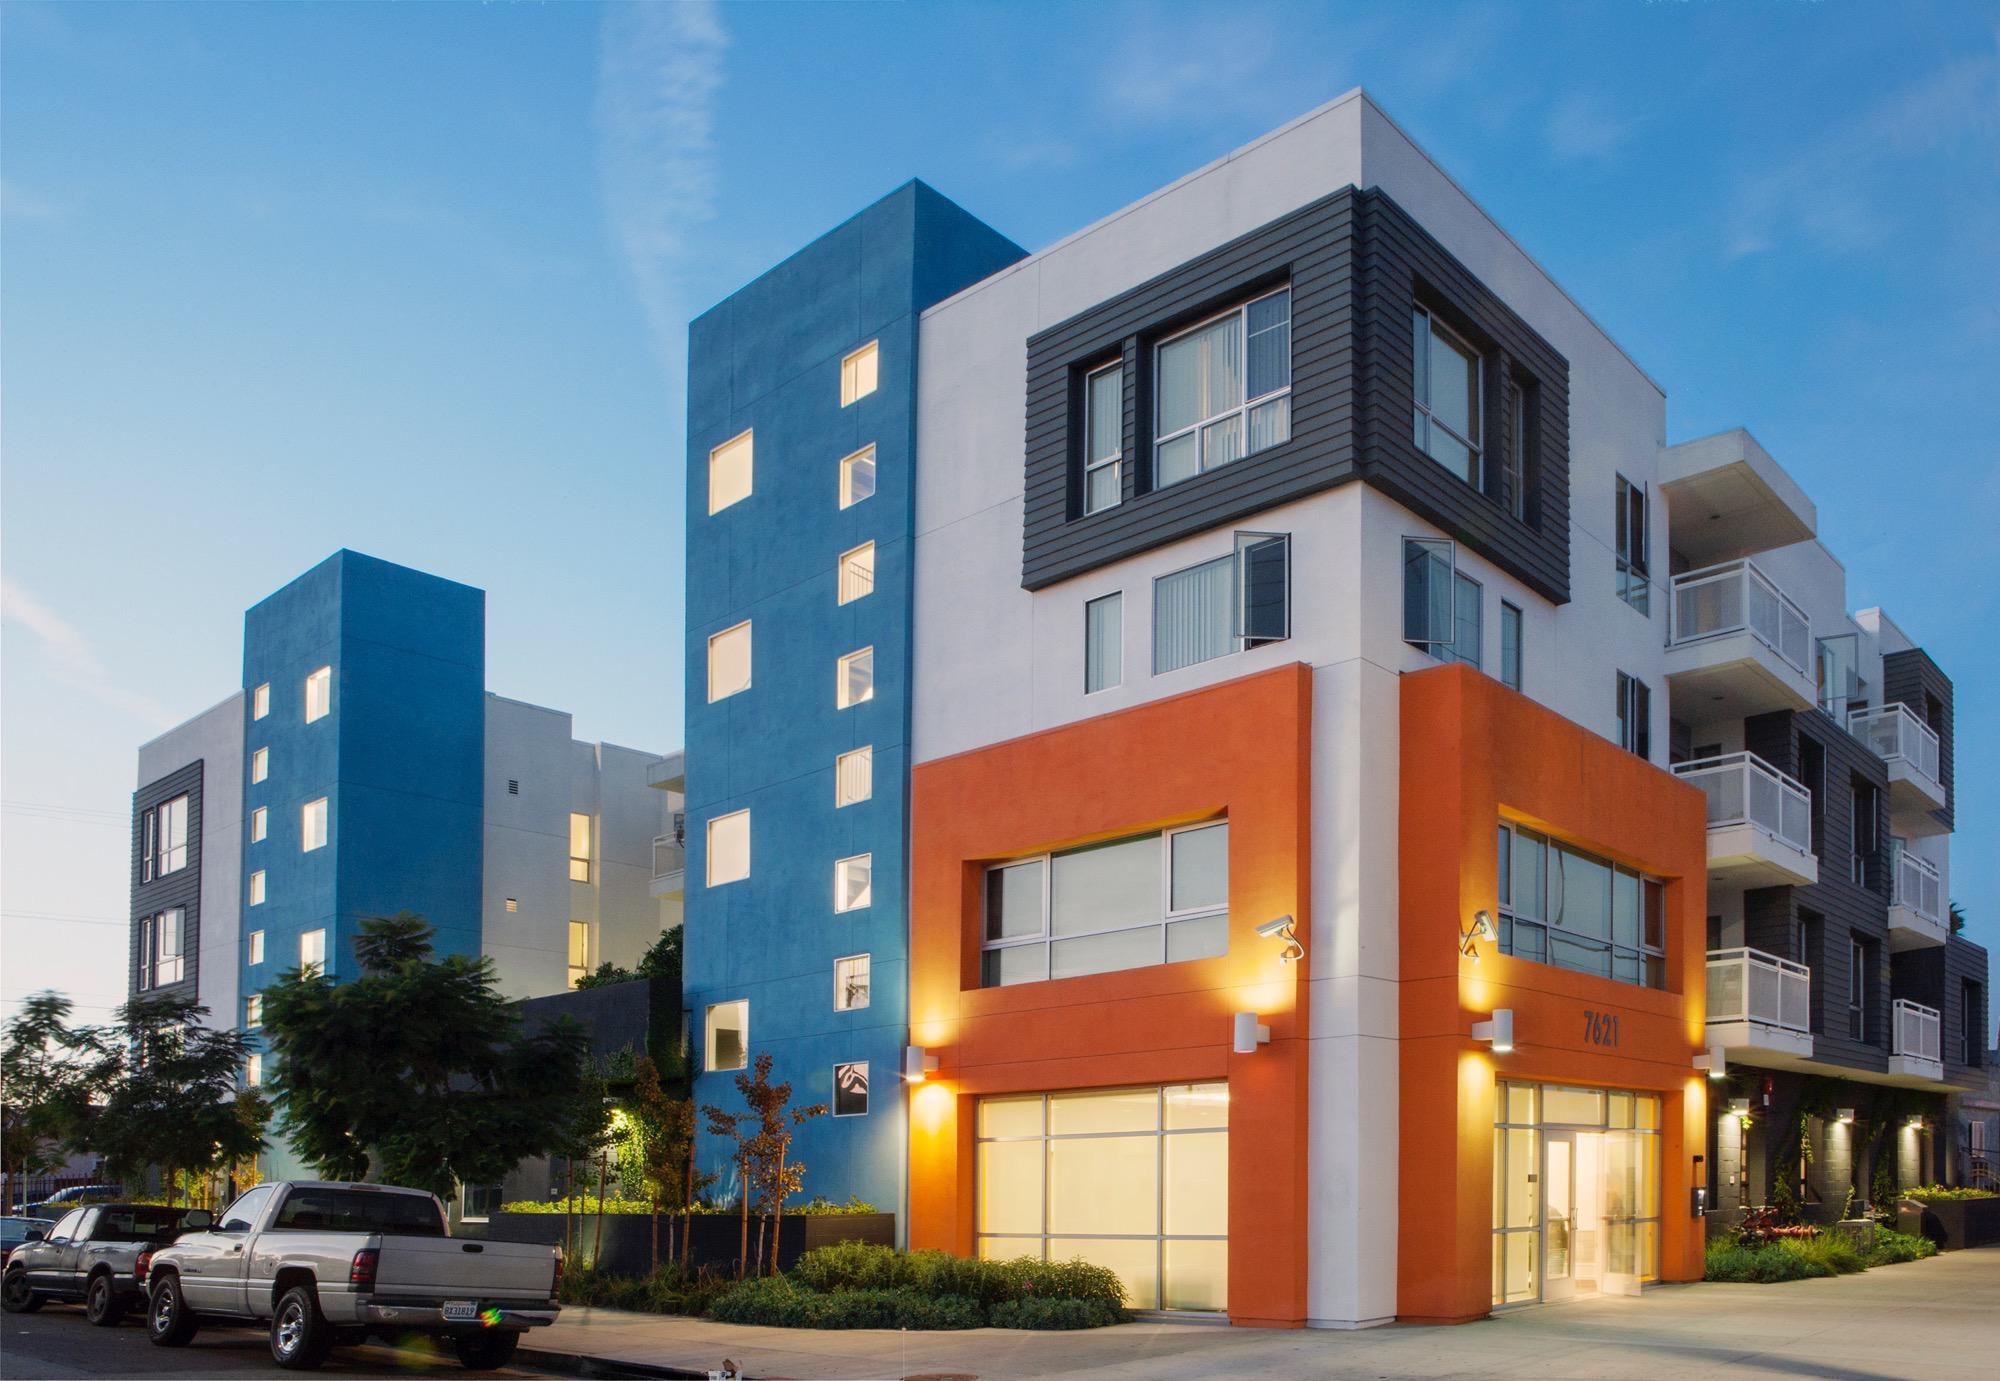 Front side view of a modern four story building. Buildong colors consist of light blue, white, gray and orange. Some units have tall windows, and some have balconies. There is newly planted trees in the front sidewalk and bushes on the side of the buildin